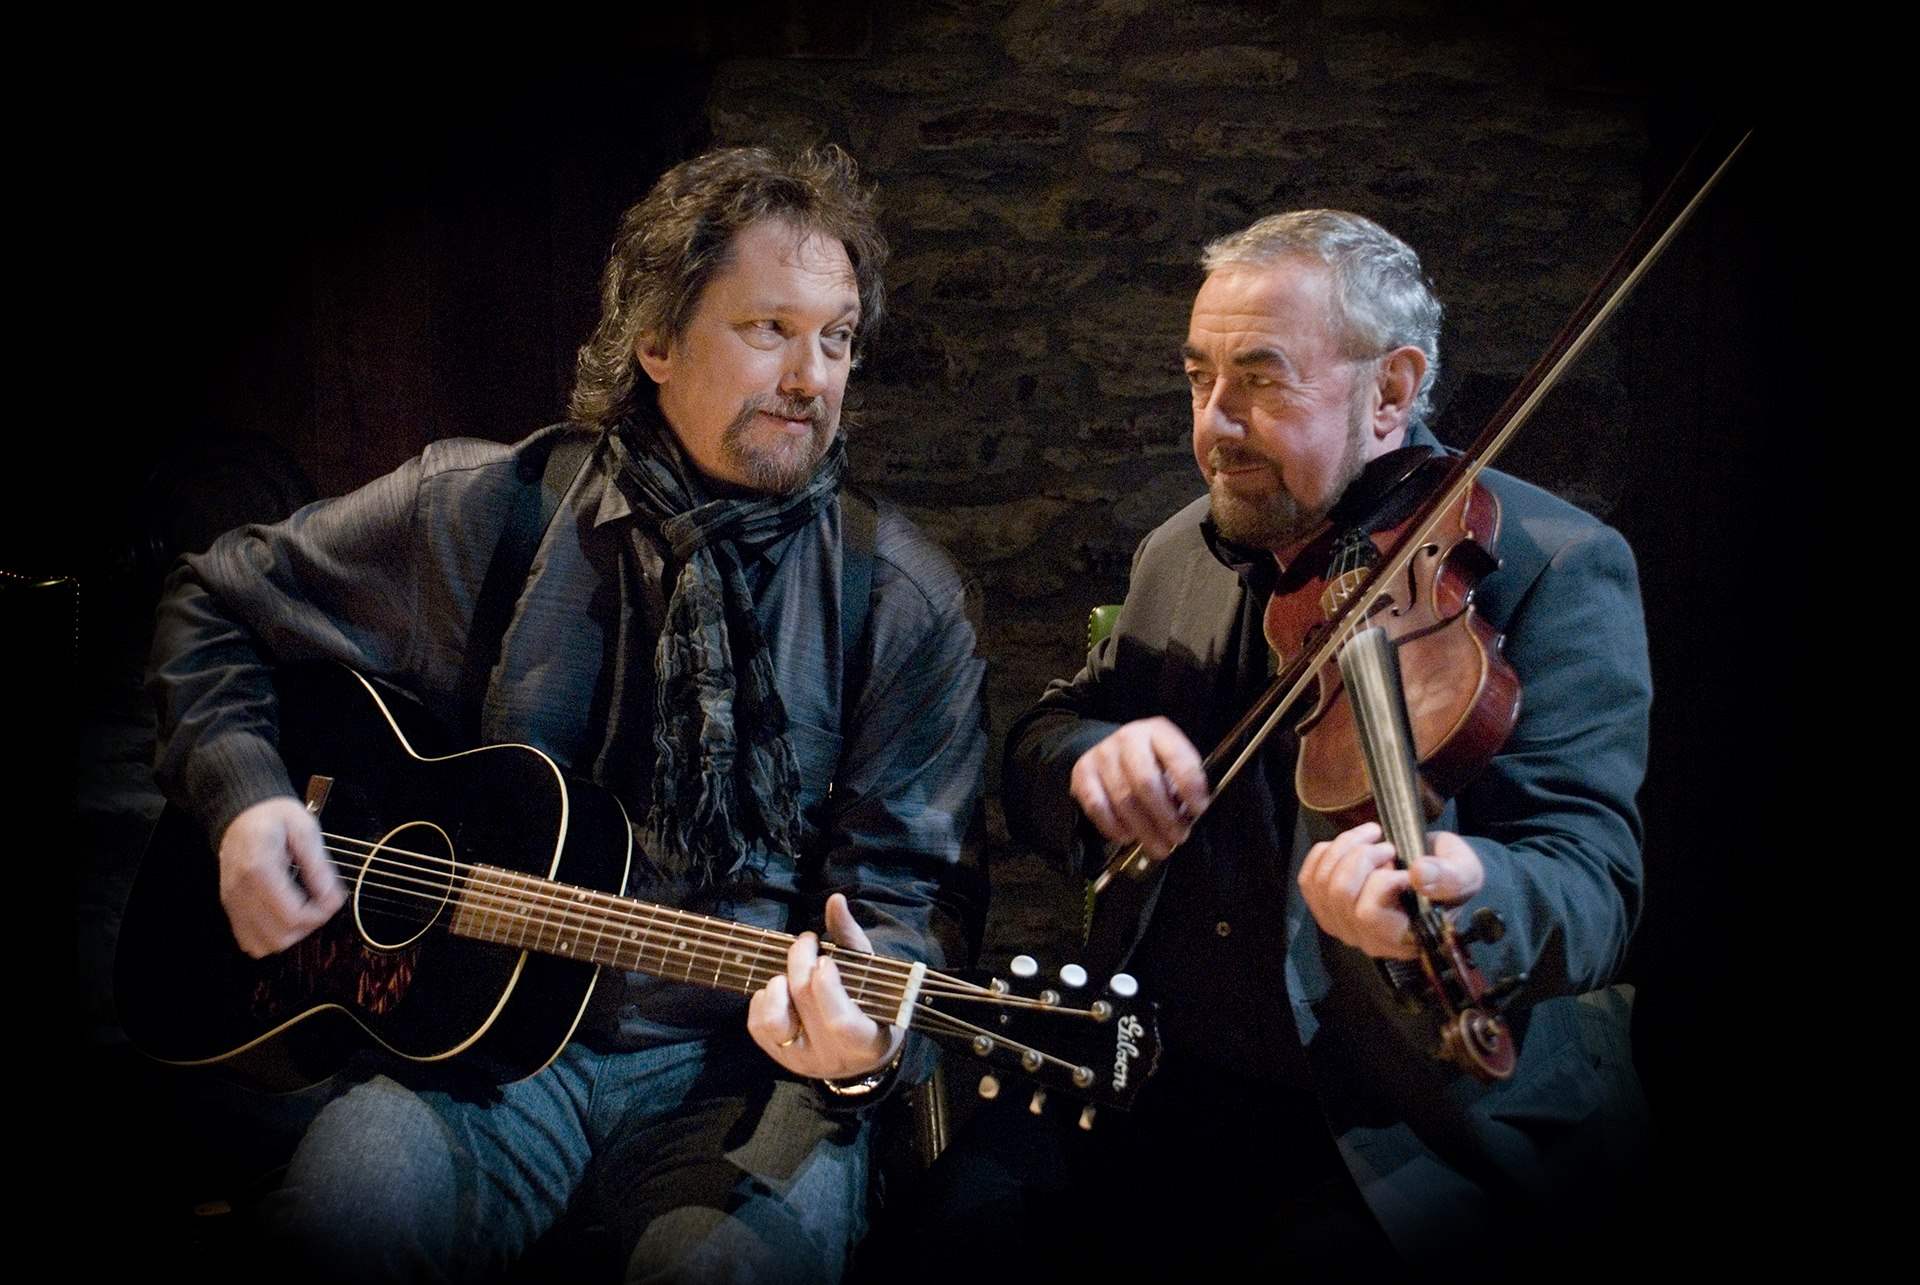 Caption: Jerry Douglas (l.) and Aly Bain host the Transatlantic Sessions, in the U.S. for the first time this year.  One stop will be Merlefest in North Carolina.  , Credit: Merlefest